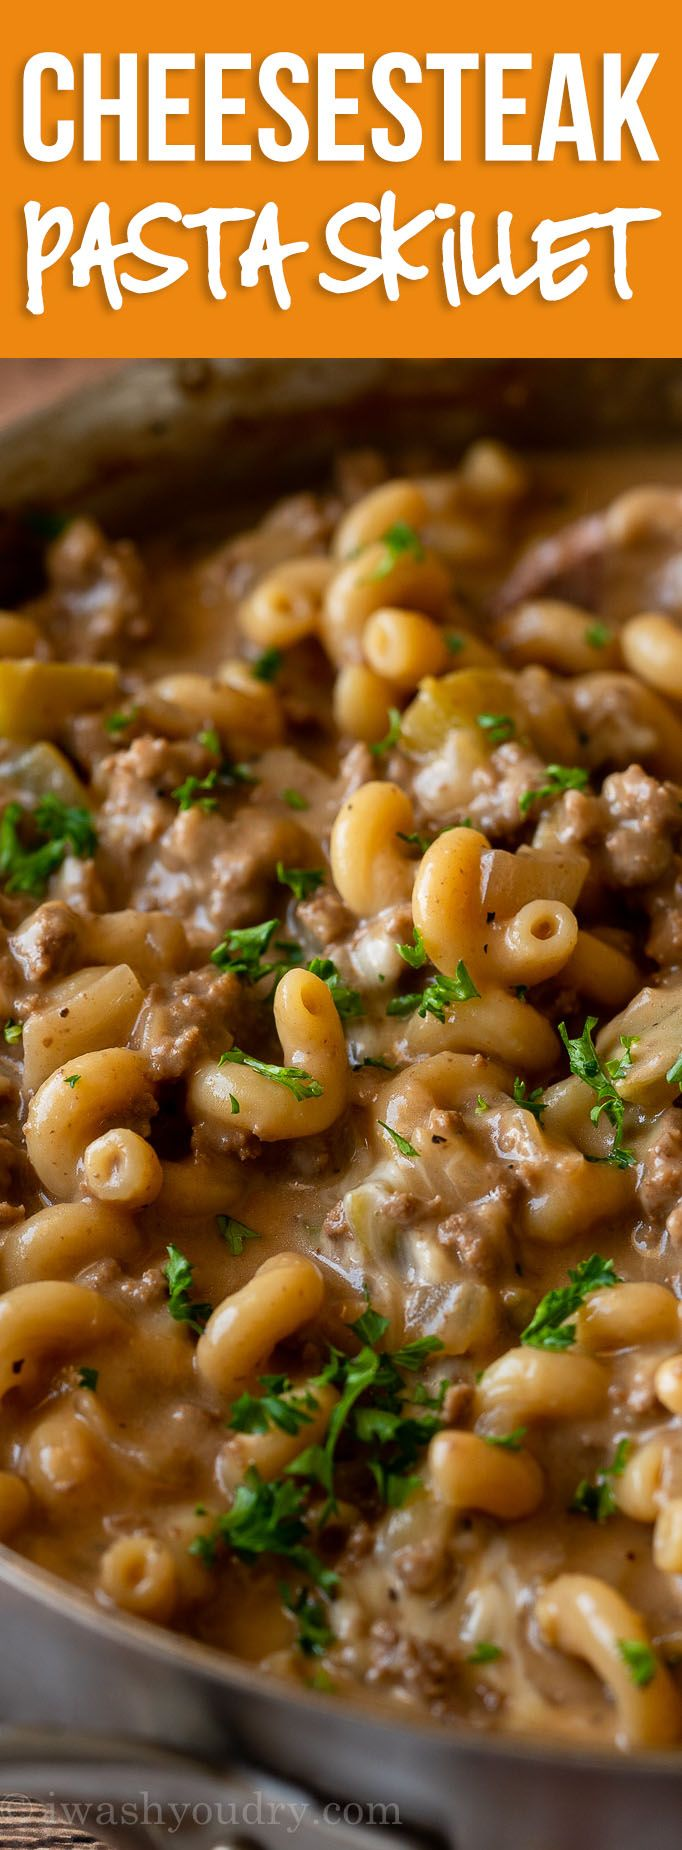 Philly Cheesesteak Pasta Skillet images